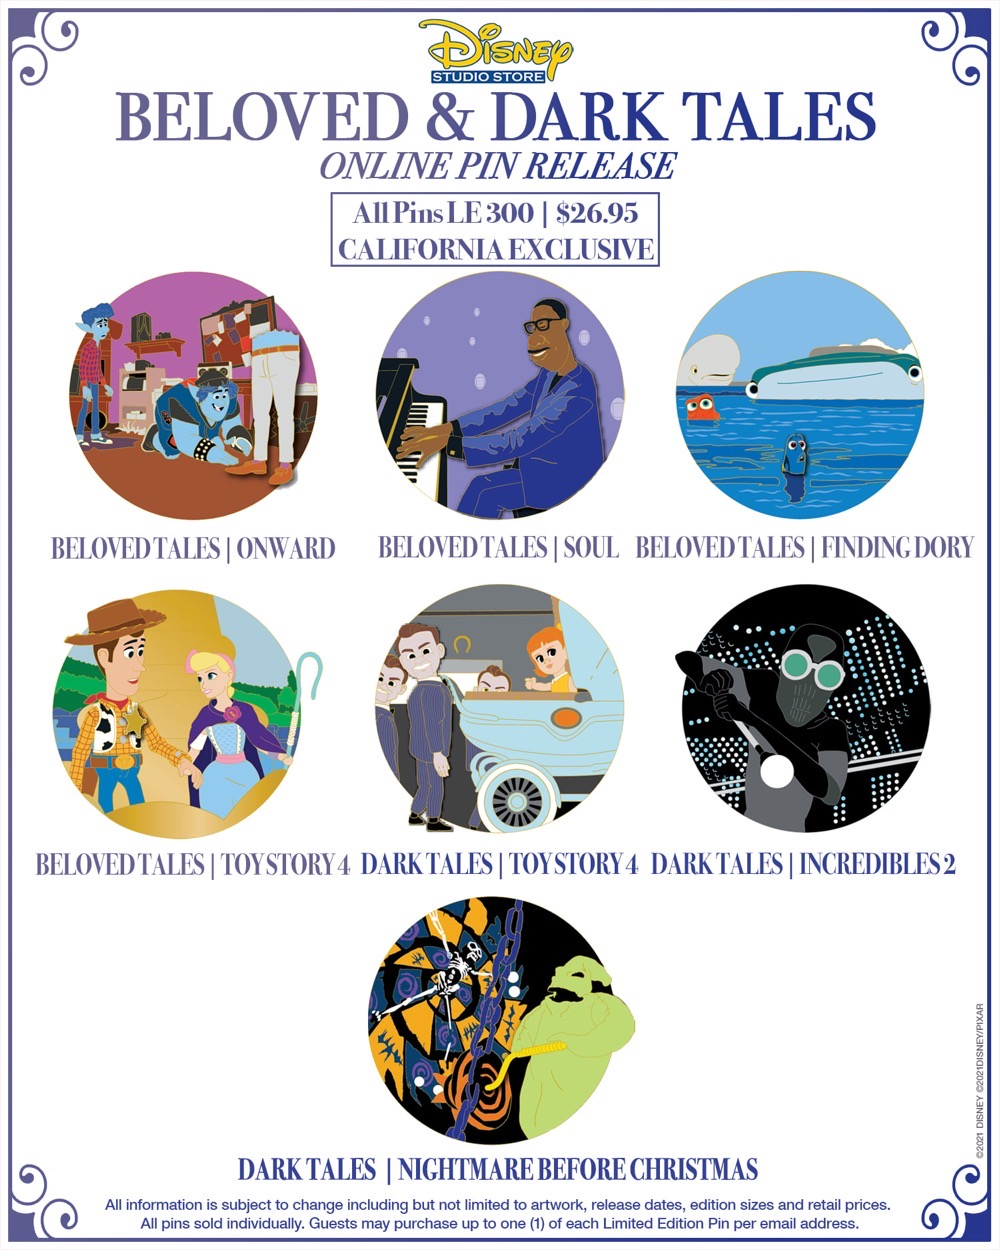 Beloved and Dark Tales Pin Releases at Disney Studio Store Hollywood